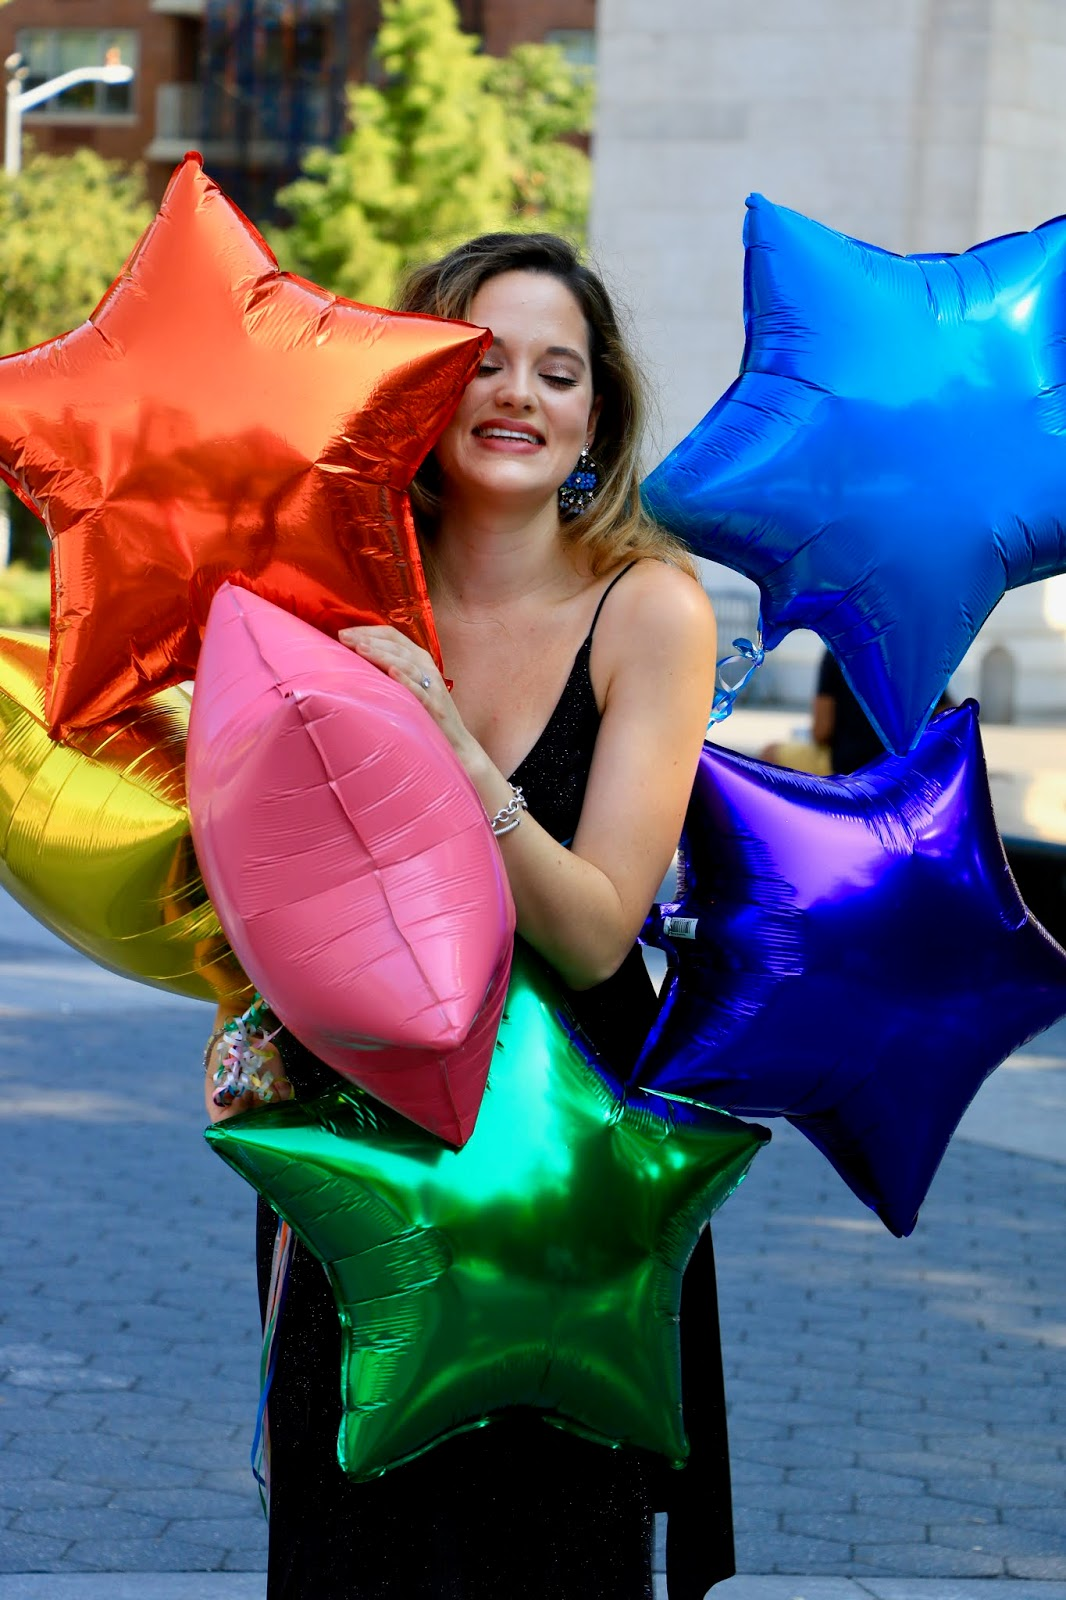 Nyc fashion blogger Kathleen Harper holding star-shaped balloons from the Upper Westside.